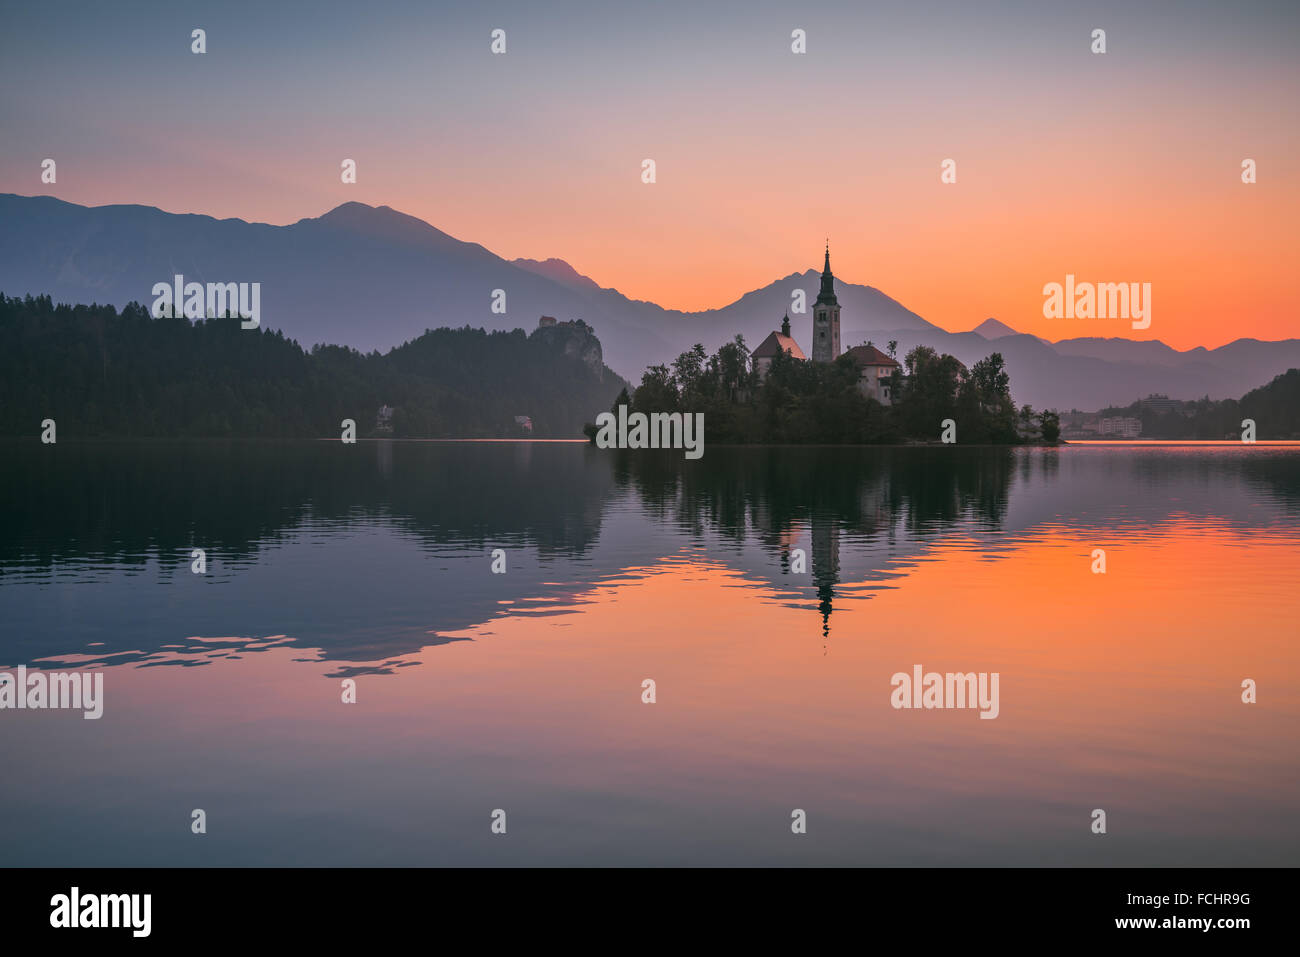 Little Island with Catholic Church in Bled Lake, Slovenia at Sunrise with Castle and Mountains in Background - Stock Image